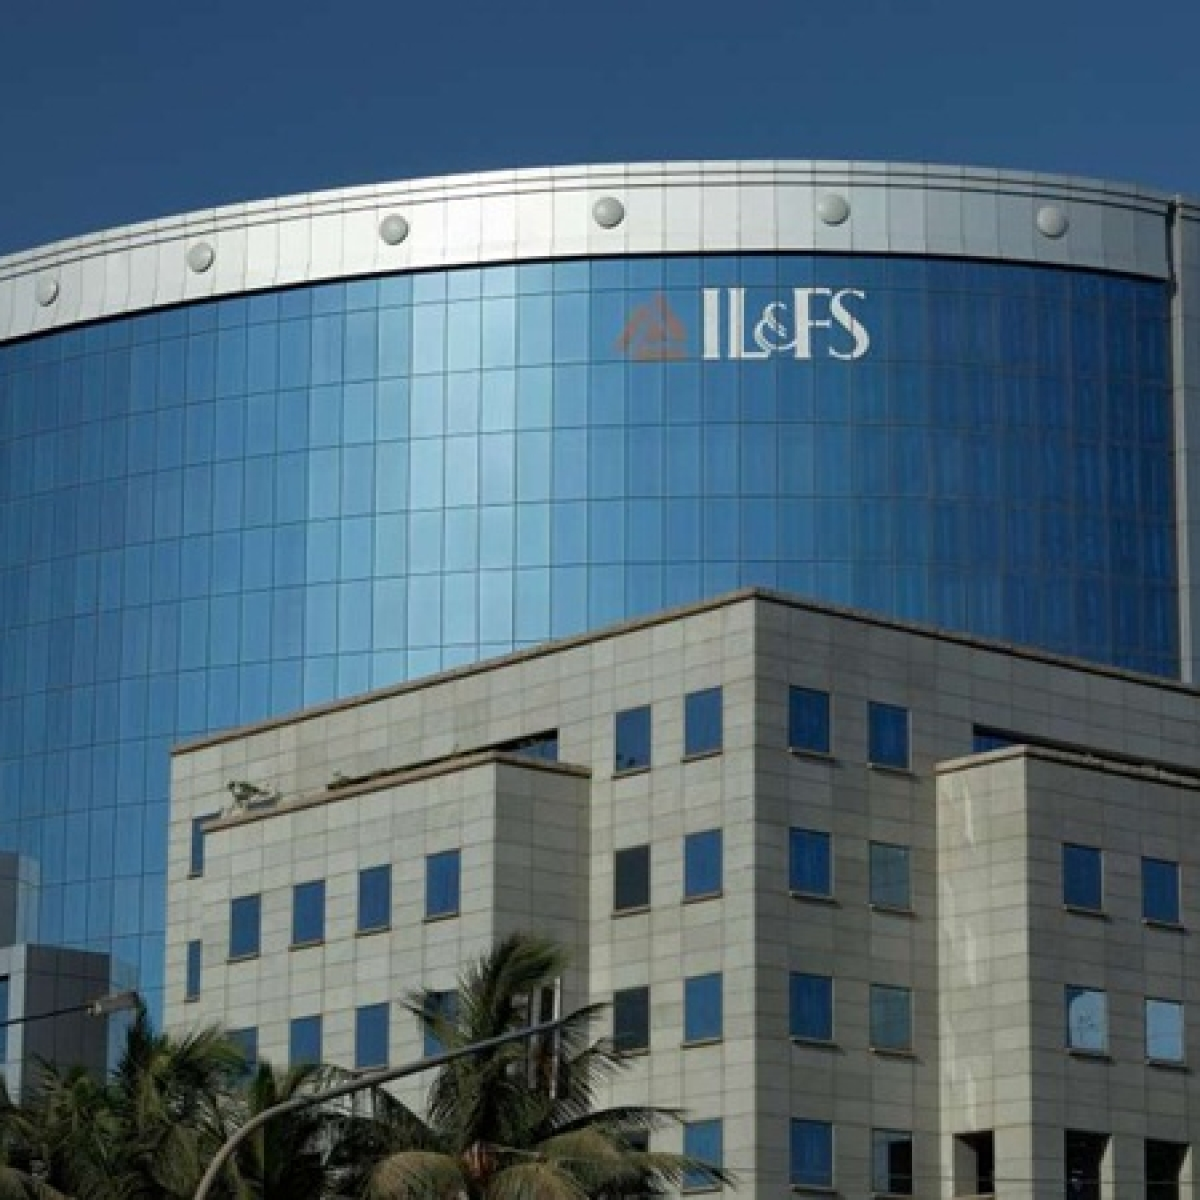 IL&FS case: Rating agencies faked IFIN ratings to dupe investors